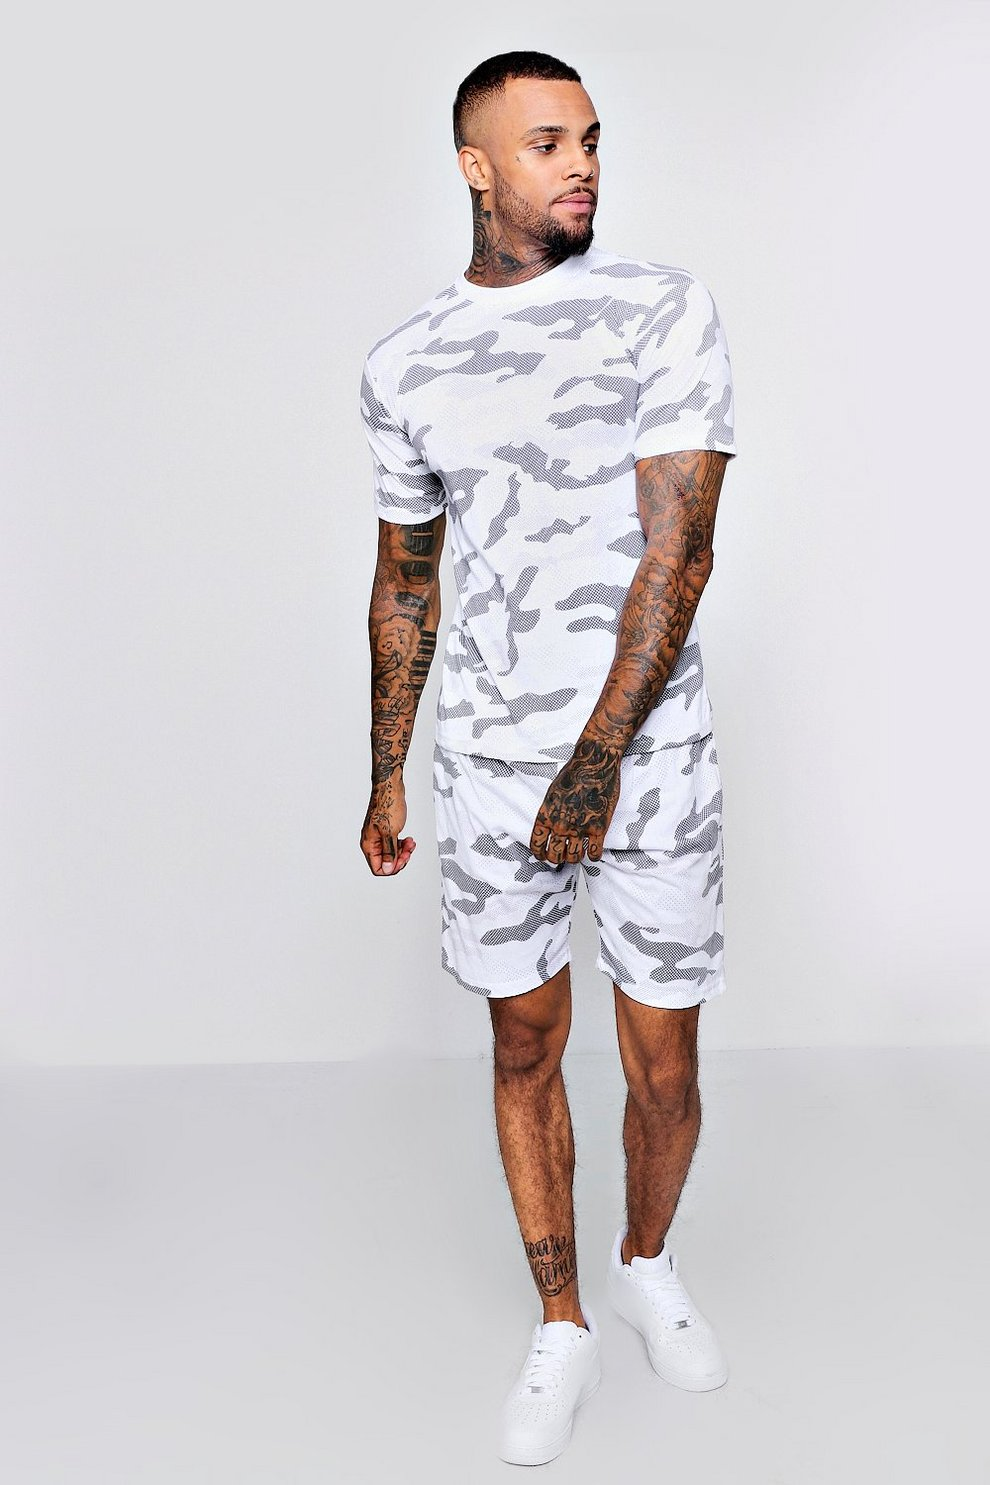 39a2426e Mens White Camo T-Shirt And Short Set. Hover to zoom